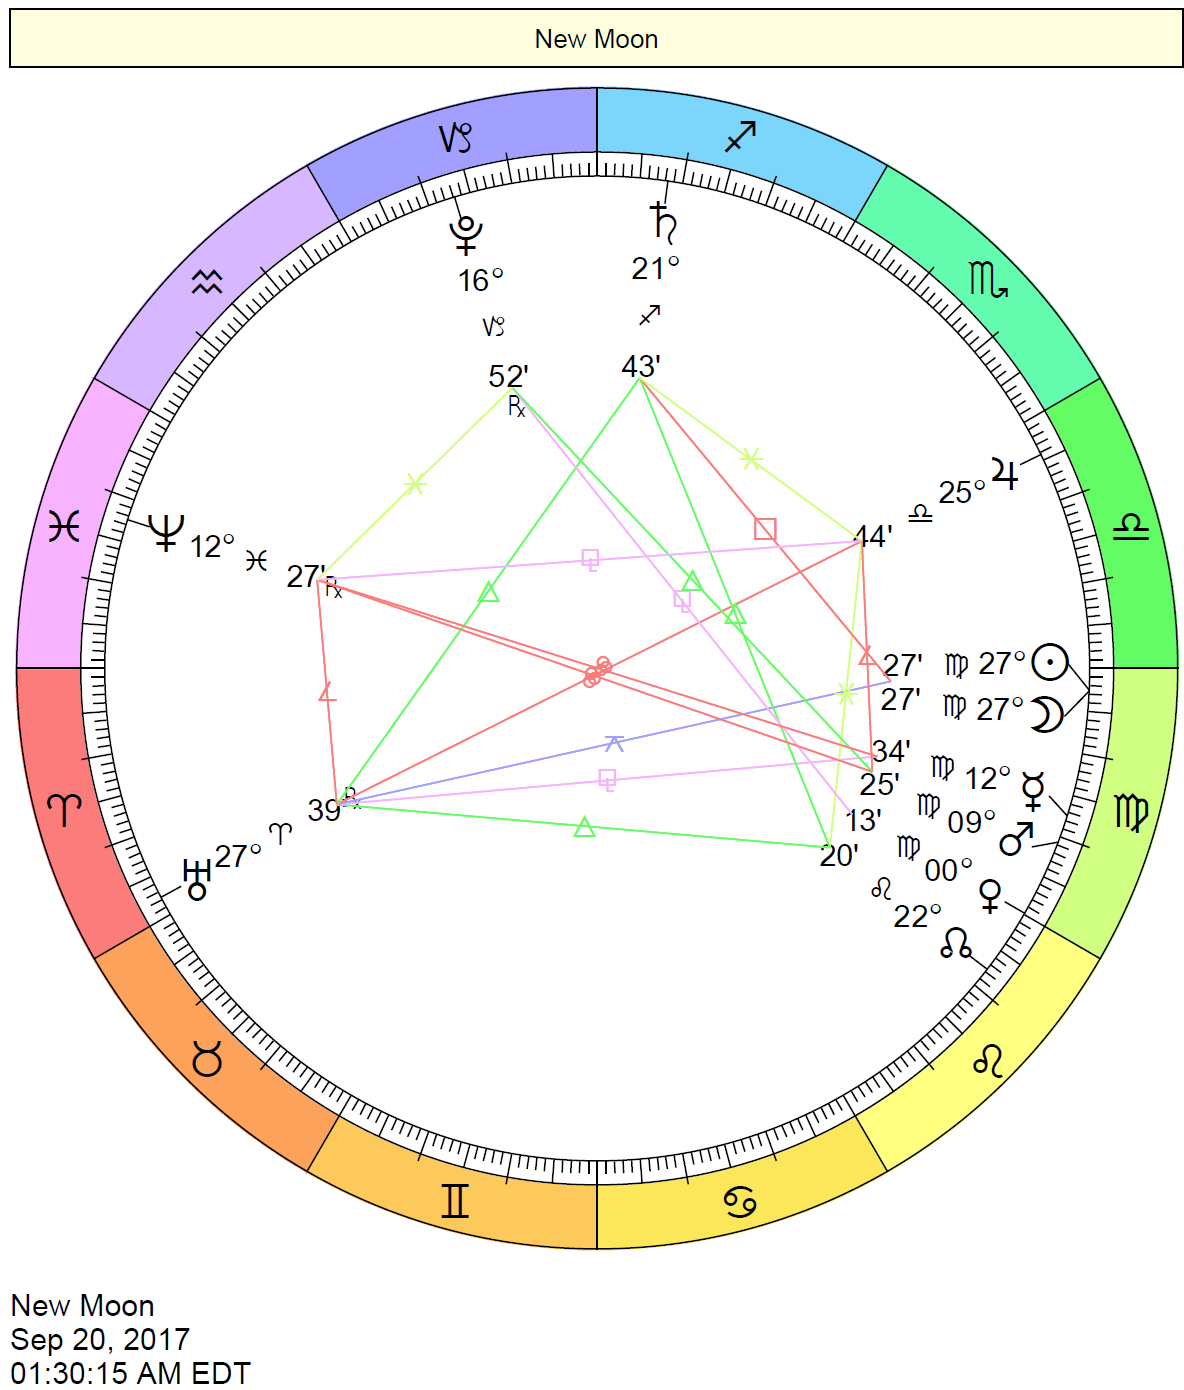 New moon in virgo chart on september 20 2017 a s t r o l o g y new moon in virgo chart on september 20 2017 nvjuhfo Image collections